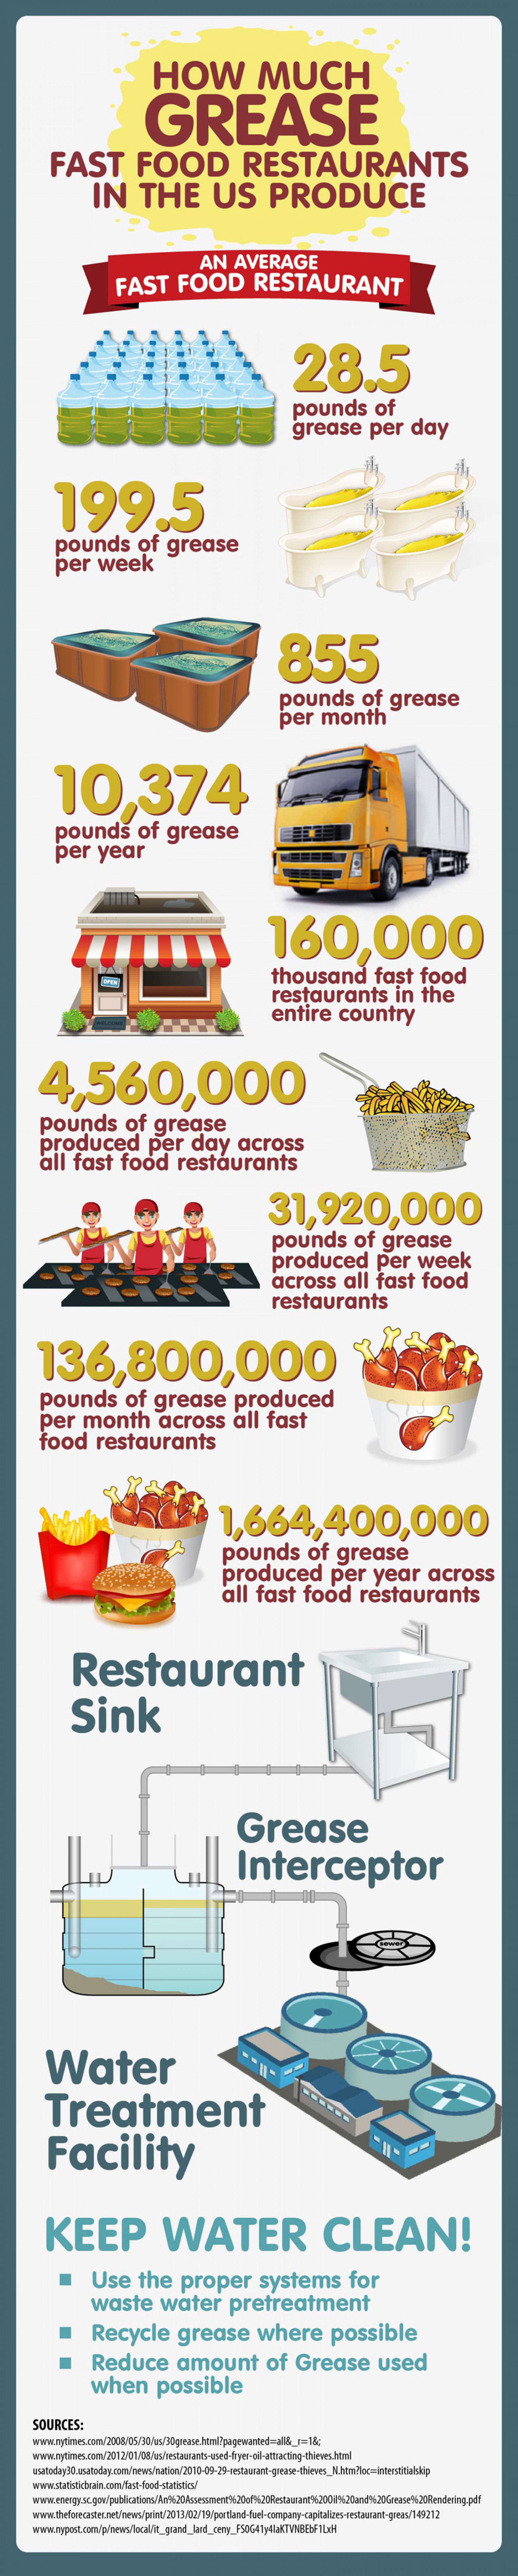 How Much Grease Fast Food Restaurants Produce Infographic